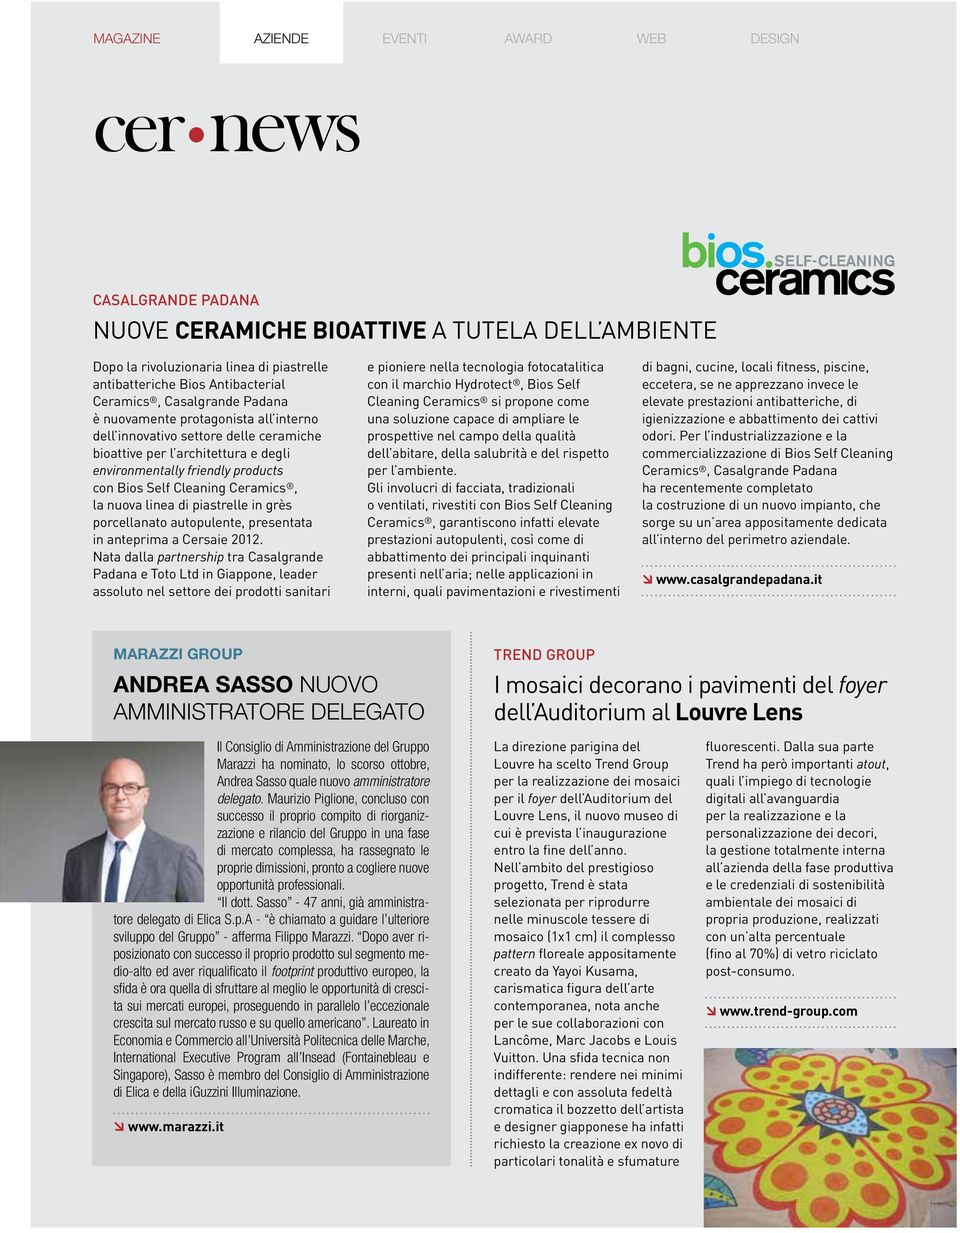 protagonista all interno dell innovativo settore delle ceramiche bioattive per l architettura e degli environmentally friendly products con Bios Self Cleaning Ceramics, la nuova linea di piastrelle